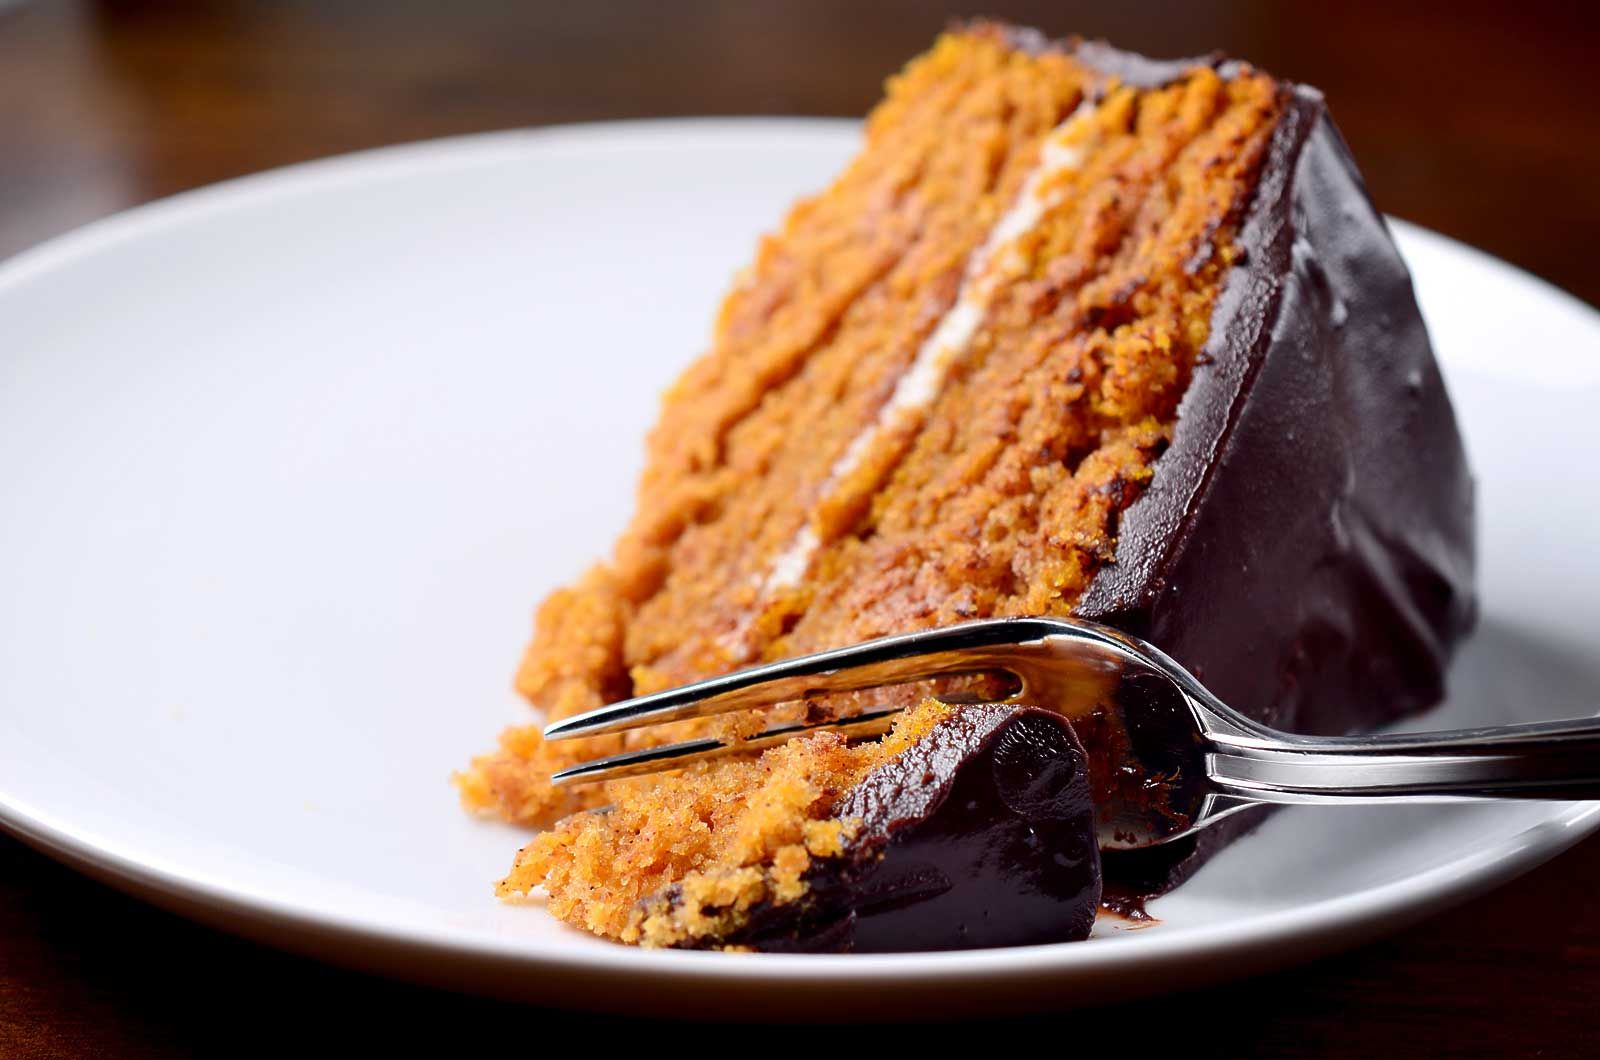 Pumpkin cake with chocolate ganache is the best cake recipe for Fall! This perfect pumpkin cake is layered with cream cheese frosting and it is SO good!